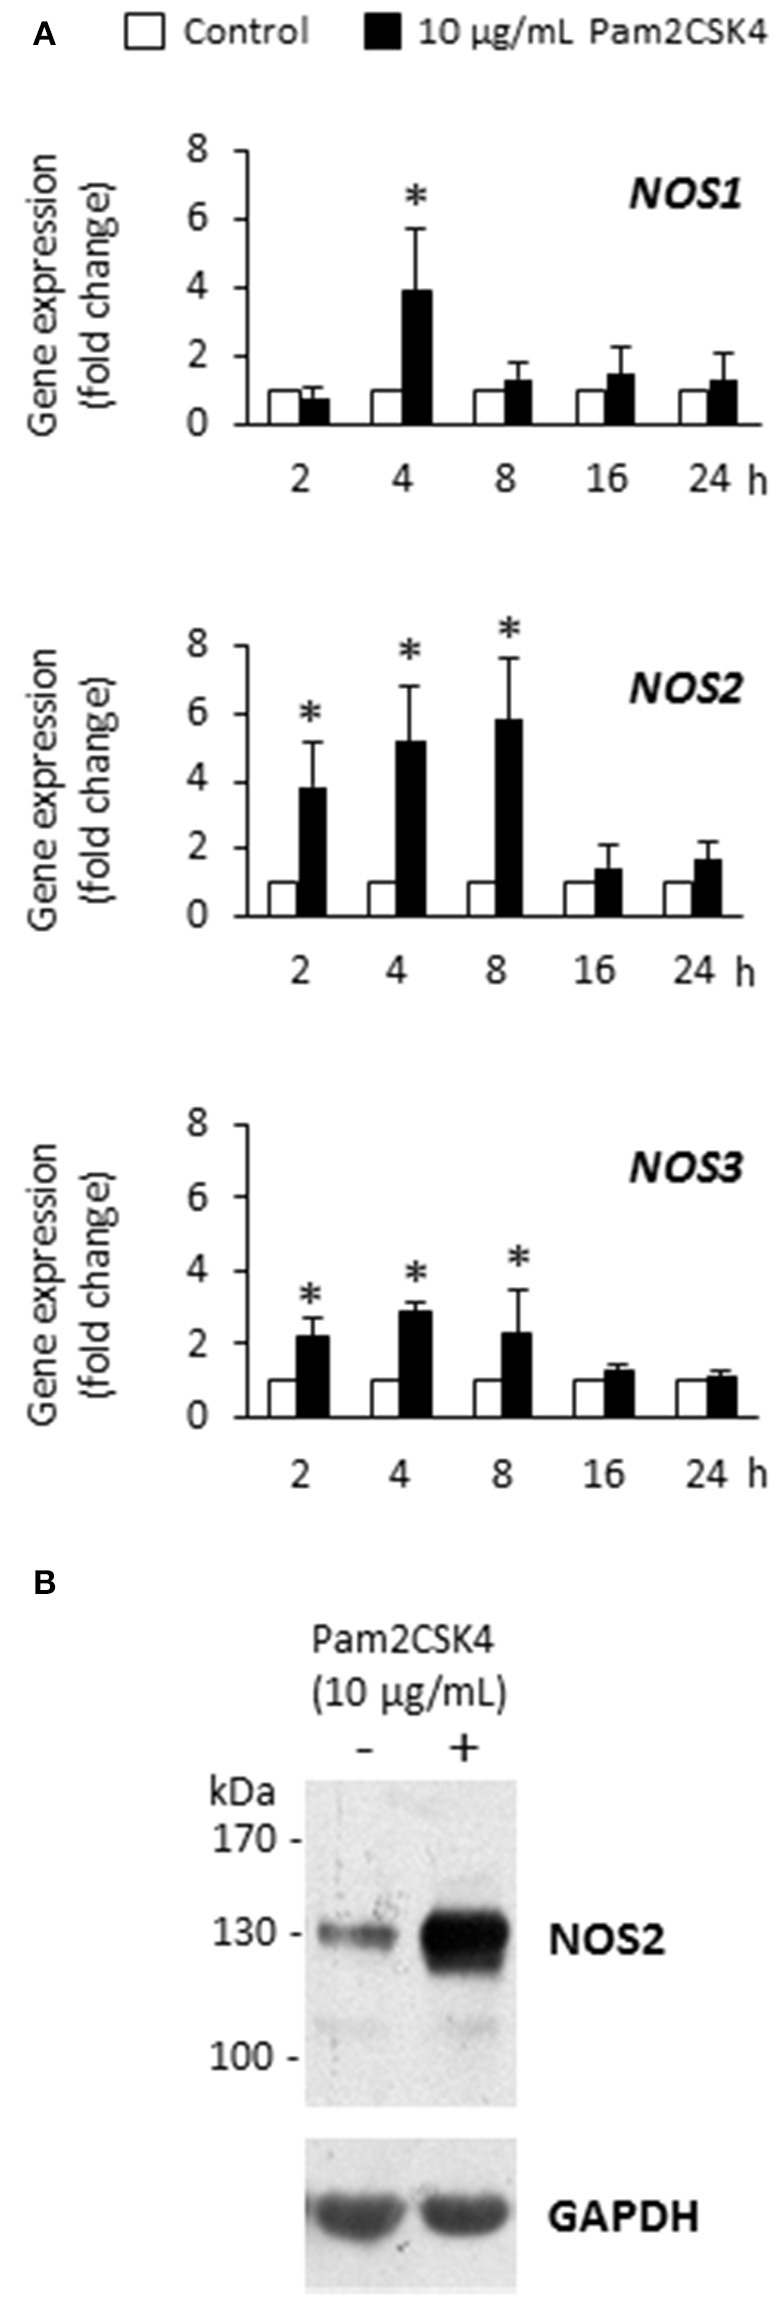 Pam2CSK4 increases NOS1 , NOS2 , and NOS3 gene expression and NOS2 protein synthesis in odontoblast-like cells. (A) Analysis of NOS1 , NOS2 , and NOS3 gene expression after cell challenge with 10 μg/mL Pam2CSK4 for the indicated times. The three genes were significantly up-regulated upon Pam2CSK4 stimulation, NOS2 being the most up-regulated one ( n = 4). * p